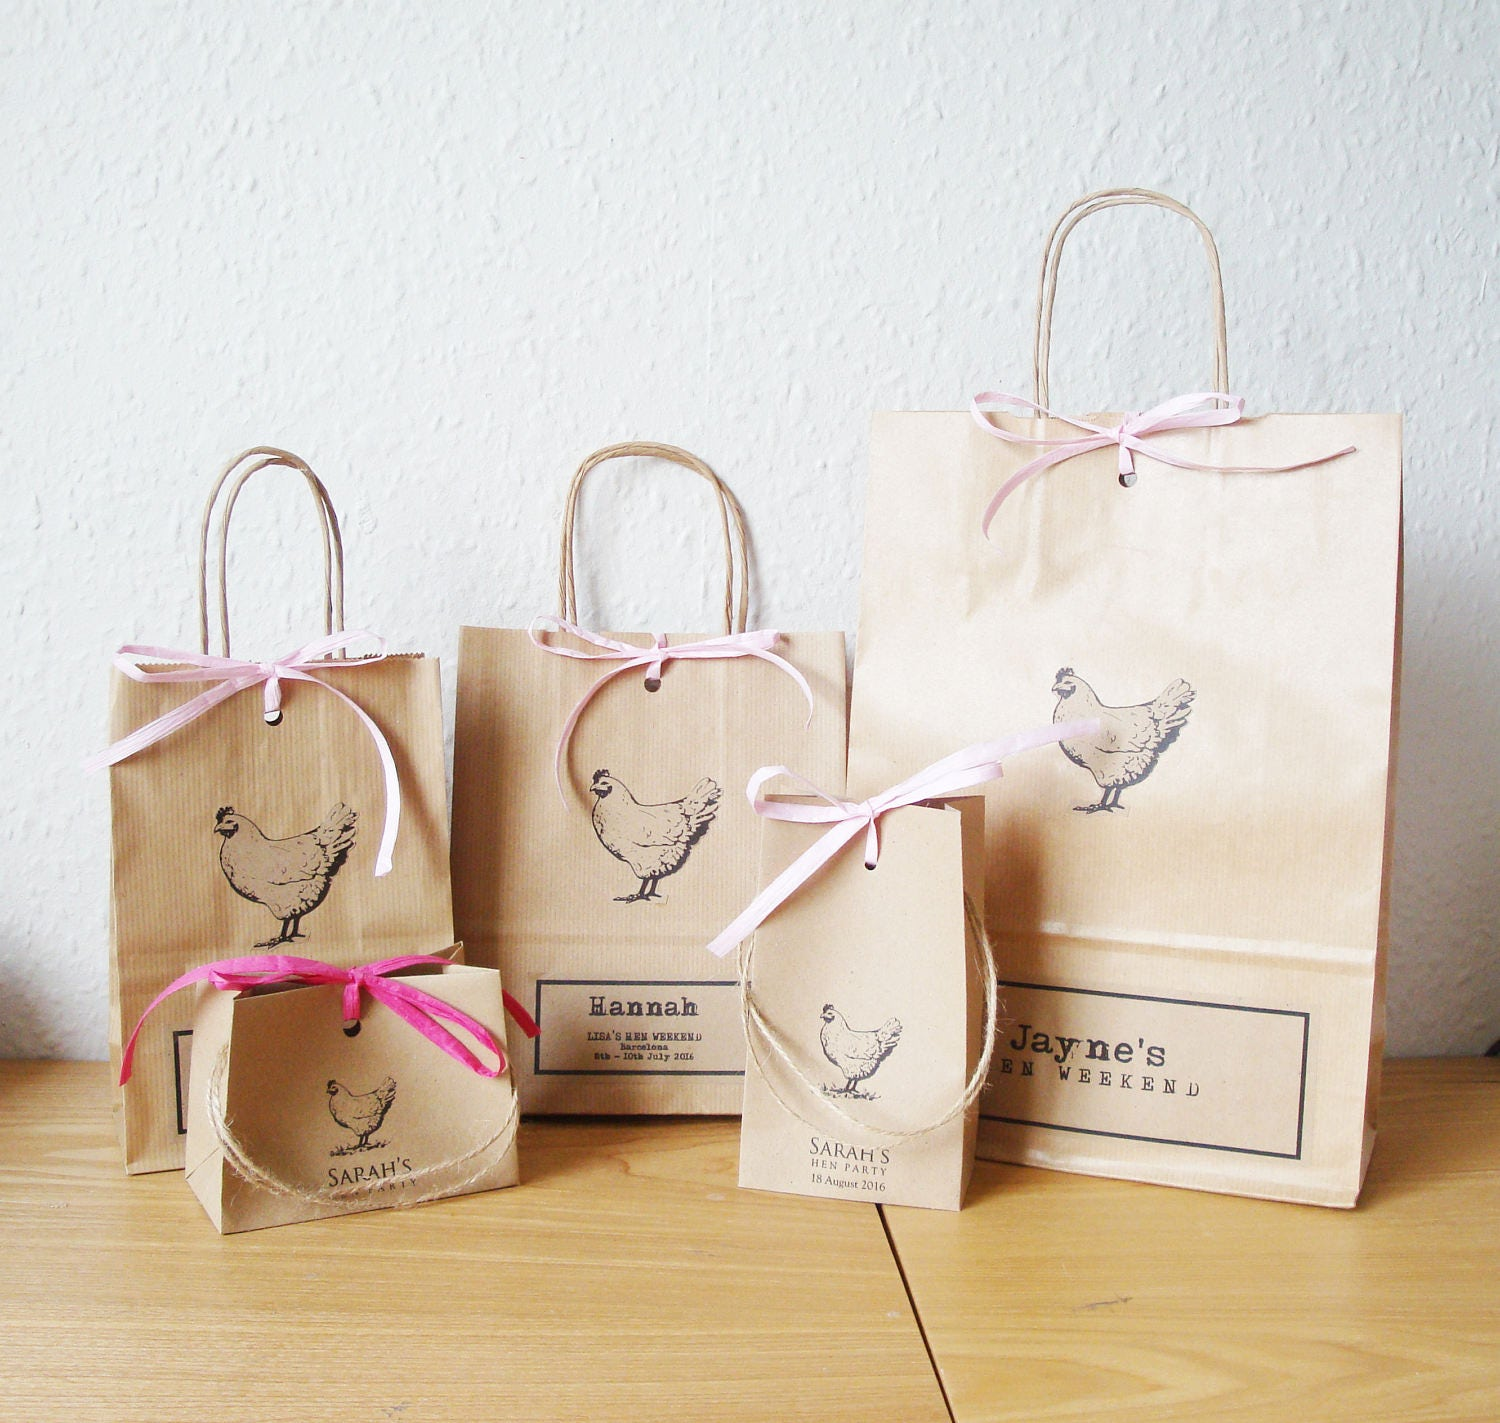 Hen party bag LARGE 23cm x 32cm tall x 10cm personalised